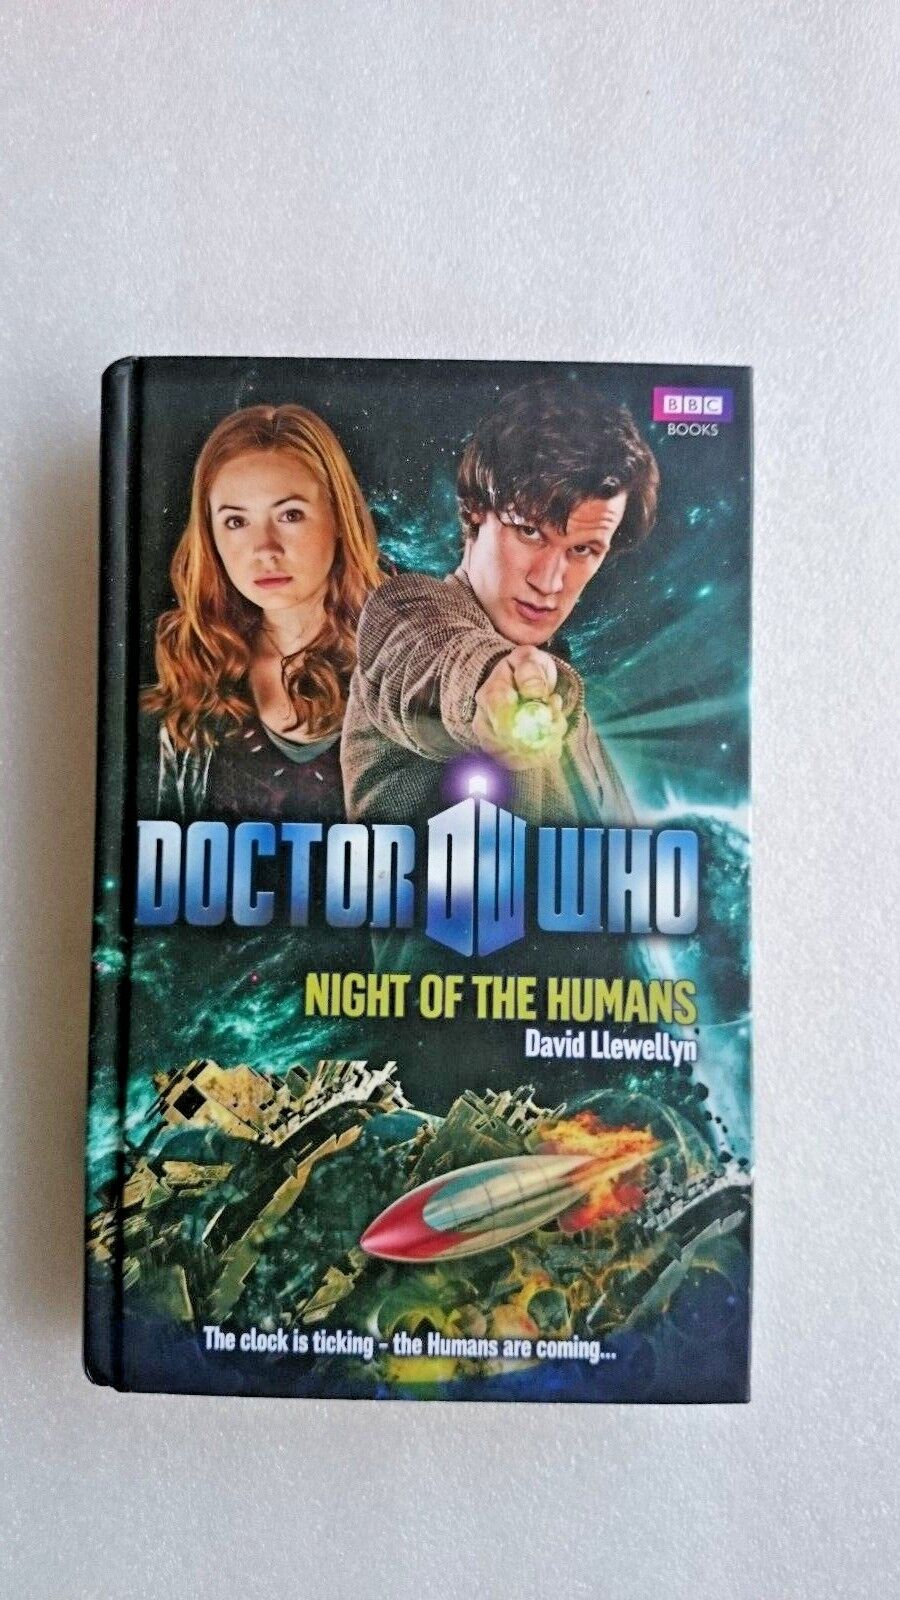 Doctor Who: Night of the Humans by David Llewellyn (Hardback, 2010)